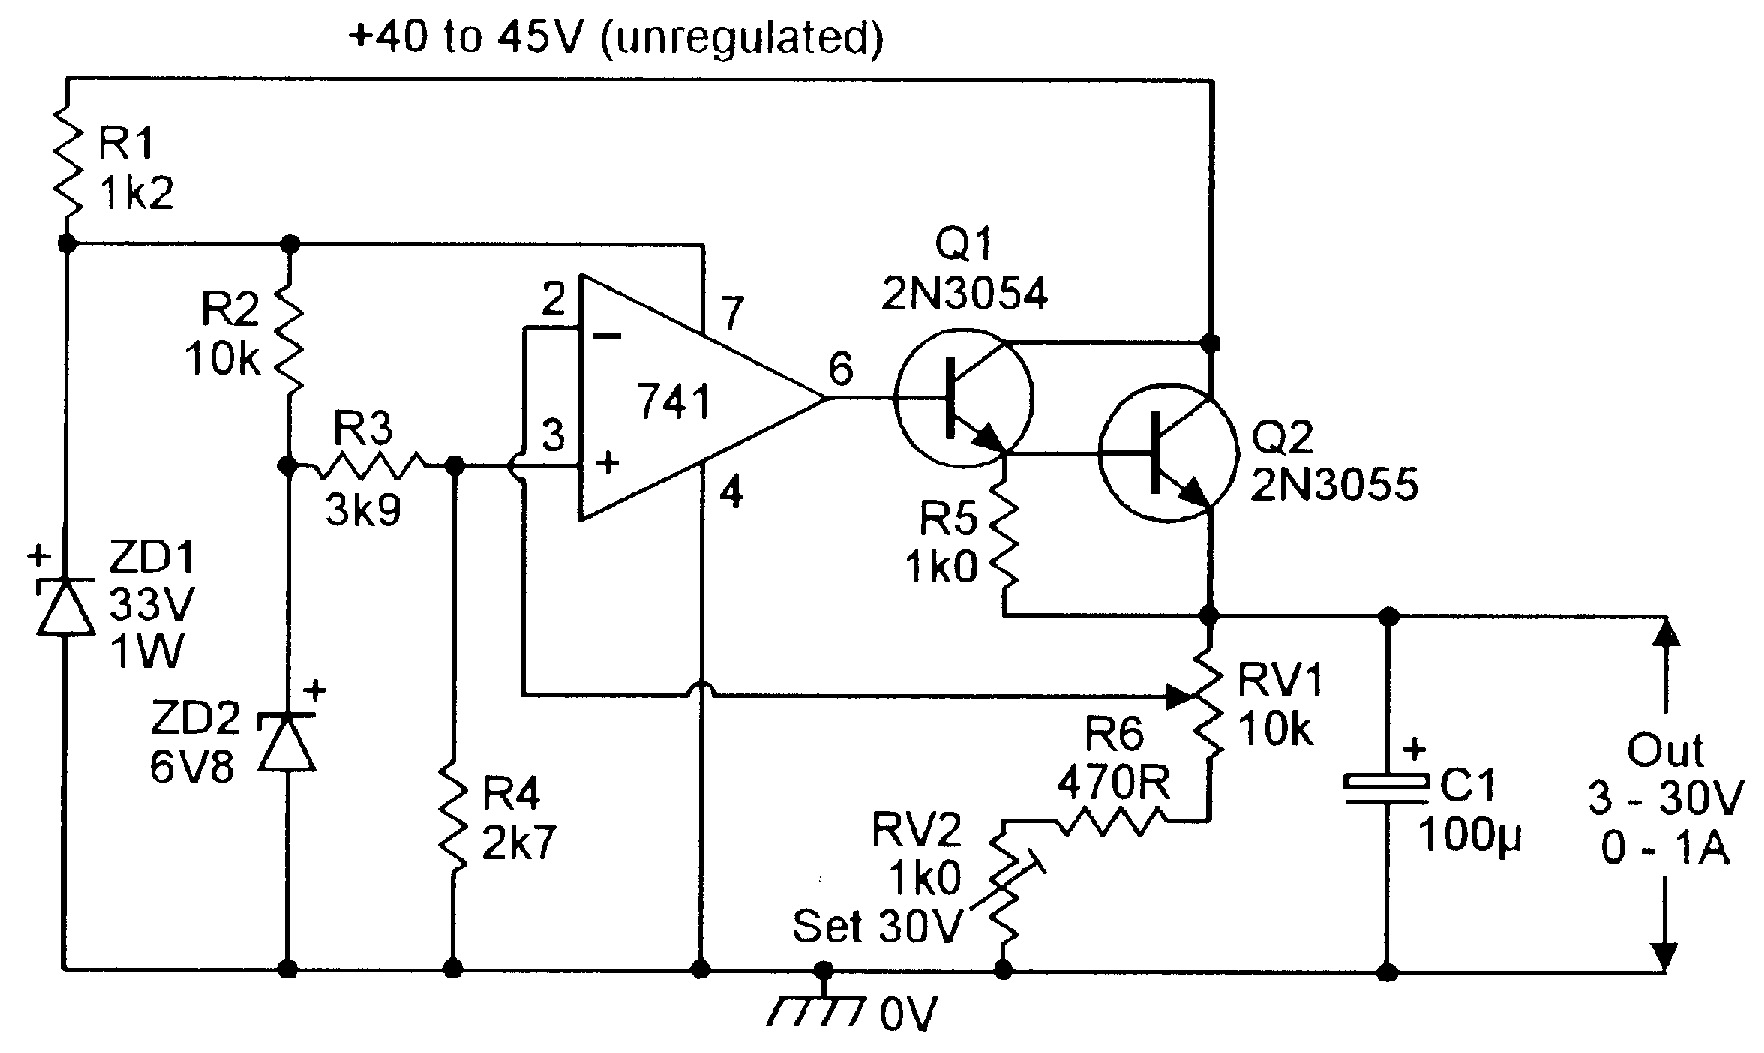 Op Amp Cookbook Part 4 Nuts Volts Magazine Figure 3 Circuit Schematic 21 3v To 30v 0 1 Stabilized Psu